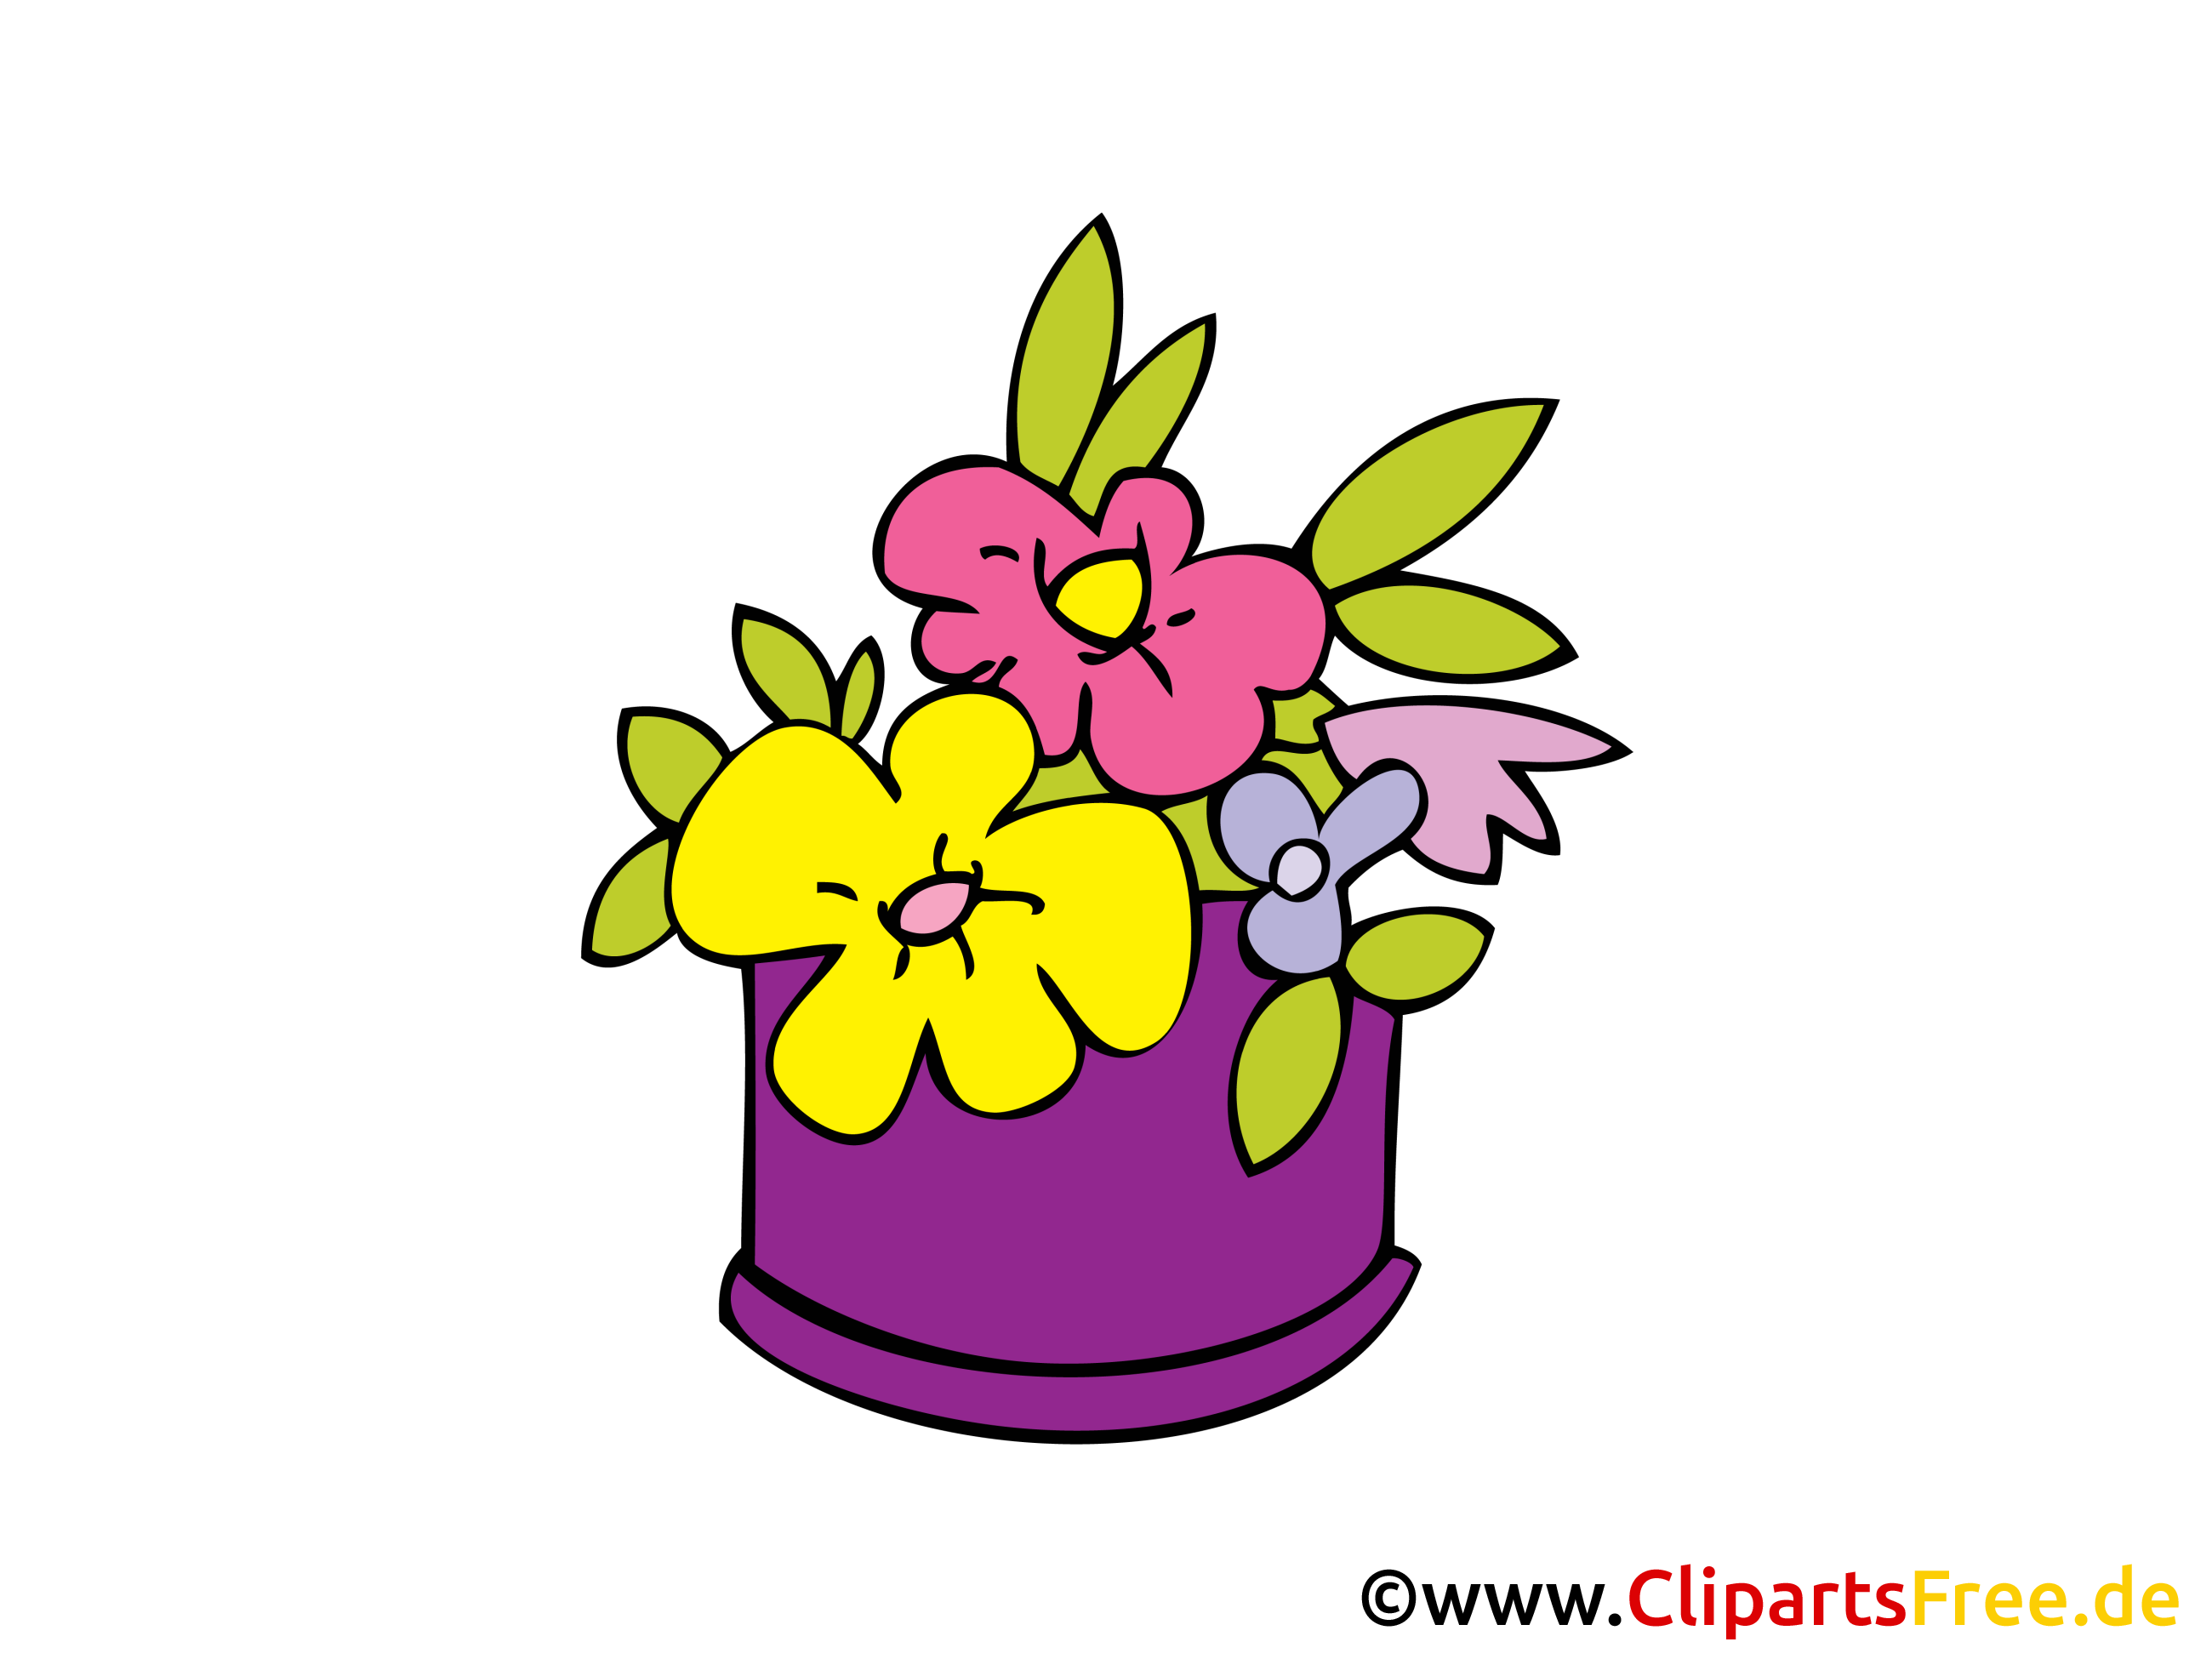 blumen clipart  bild  comic  cartoon gratis animated clipart still pics animated clipart teamwork